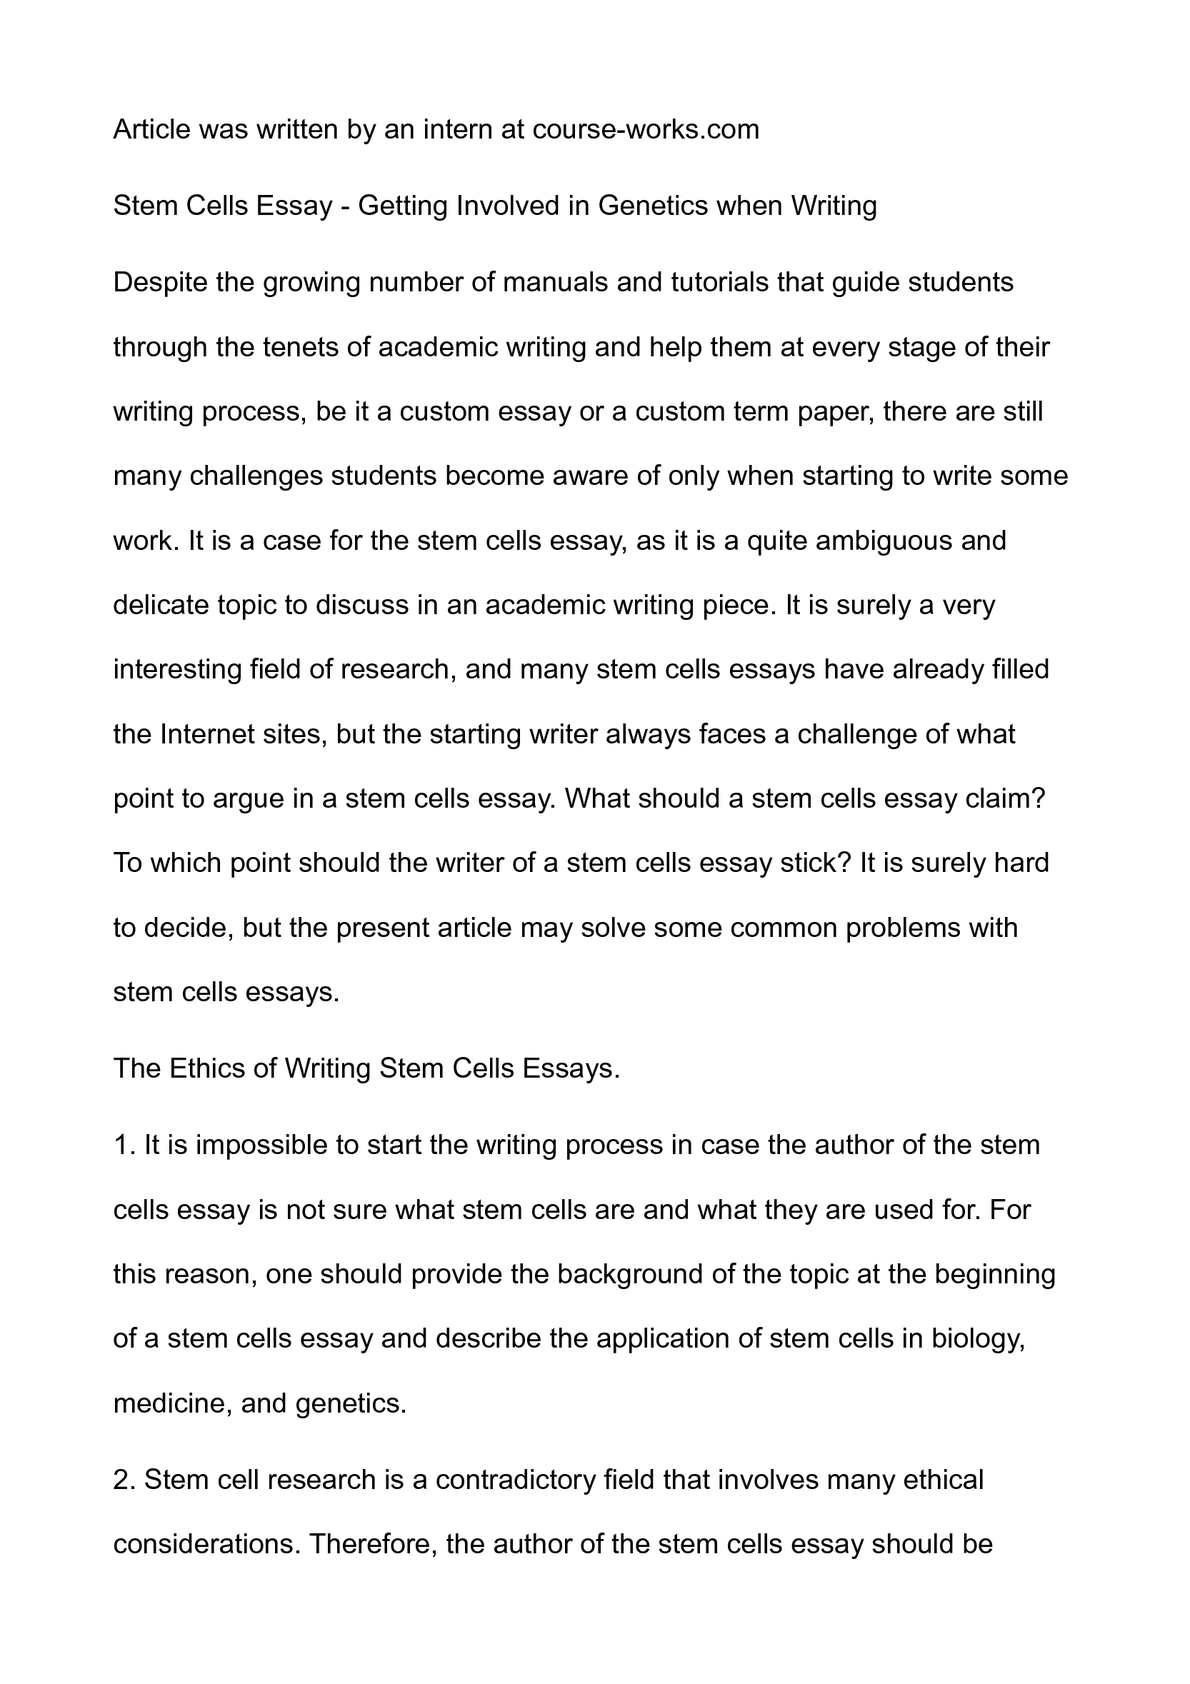 Calamo  Stem Cells Essay  Getting Involved In Genetics When Writing  Writing A Business Plan Help also Assigments Do It For Me  Examples Of Good Essays In English